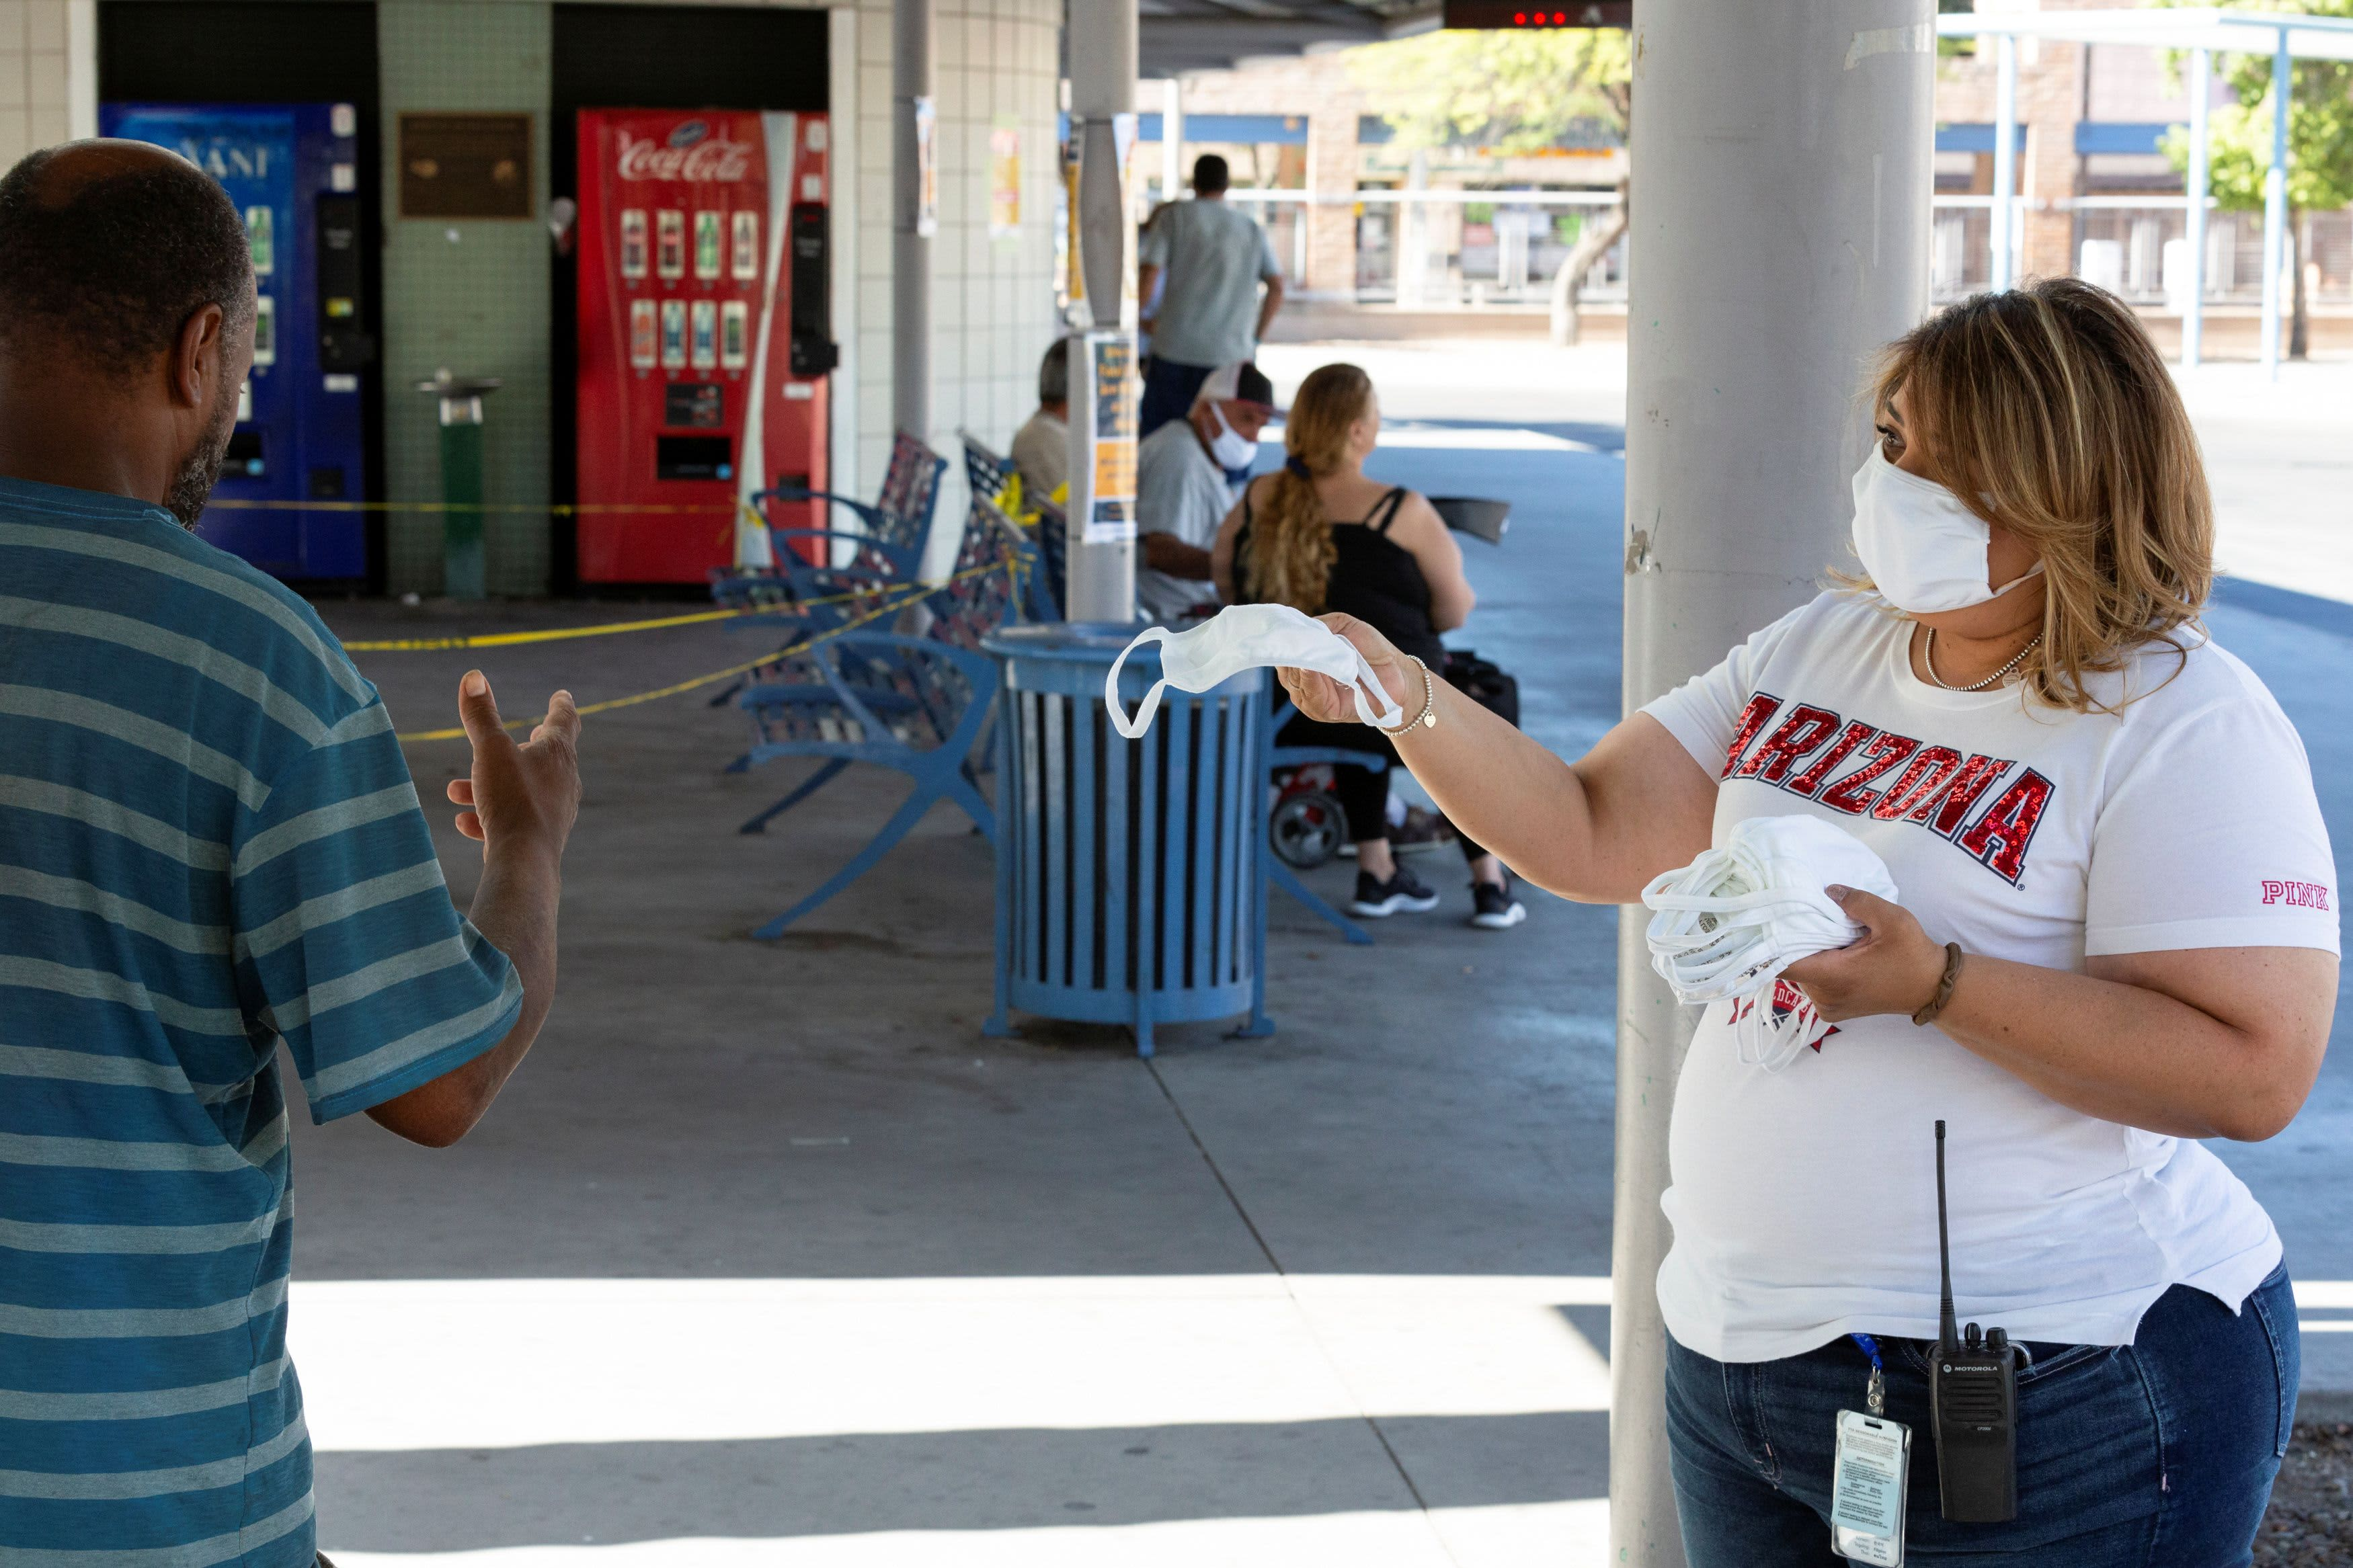 U.S. hits highest single day of coronavirus cases at 45,500, breaking April record 1